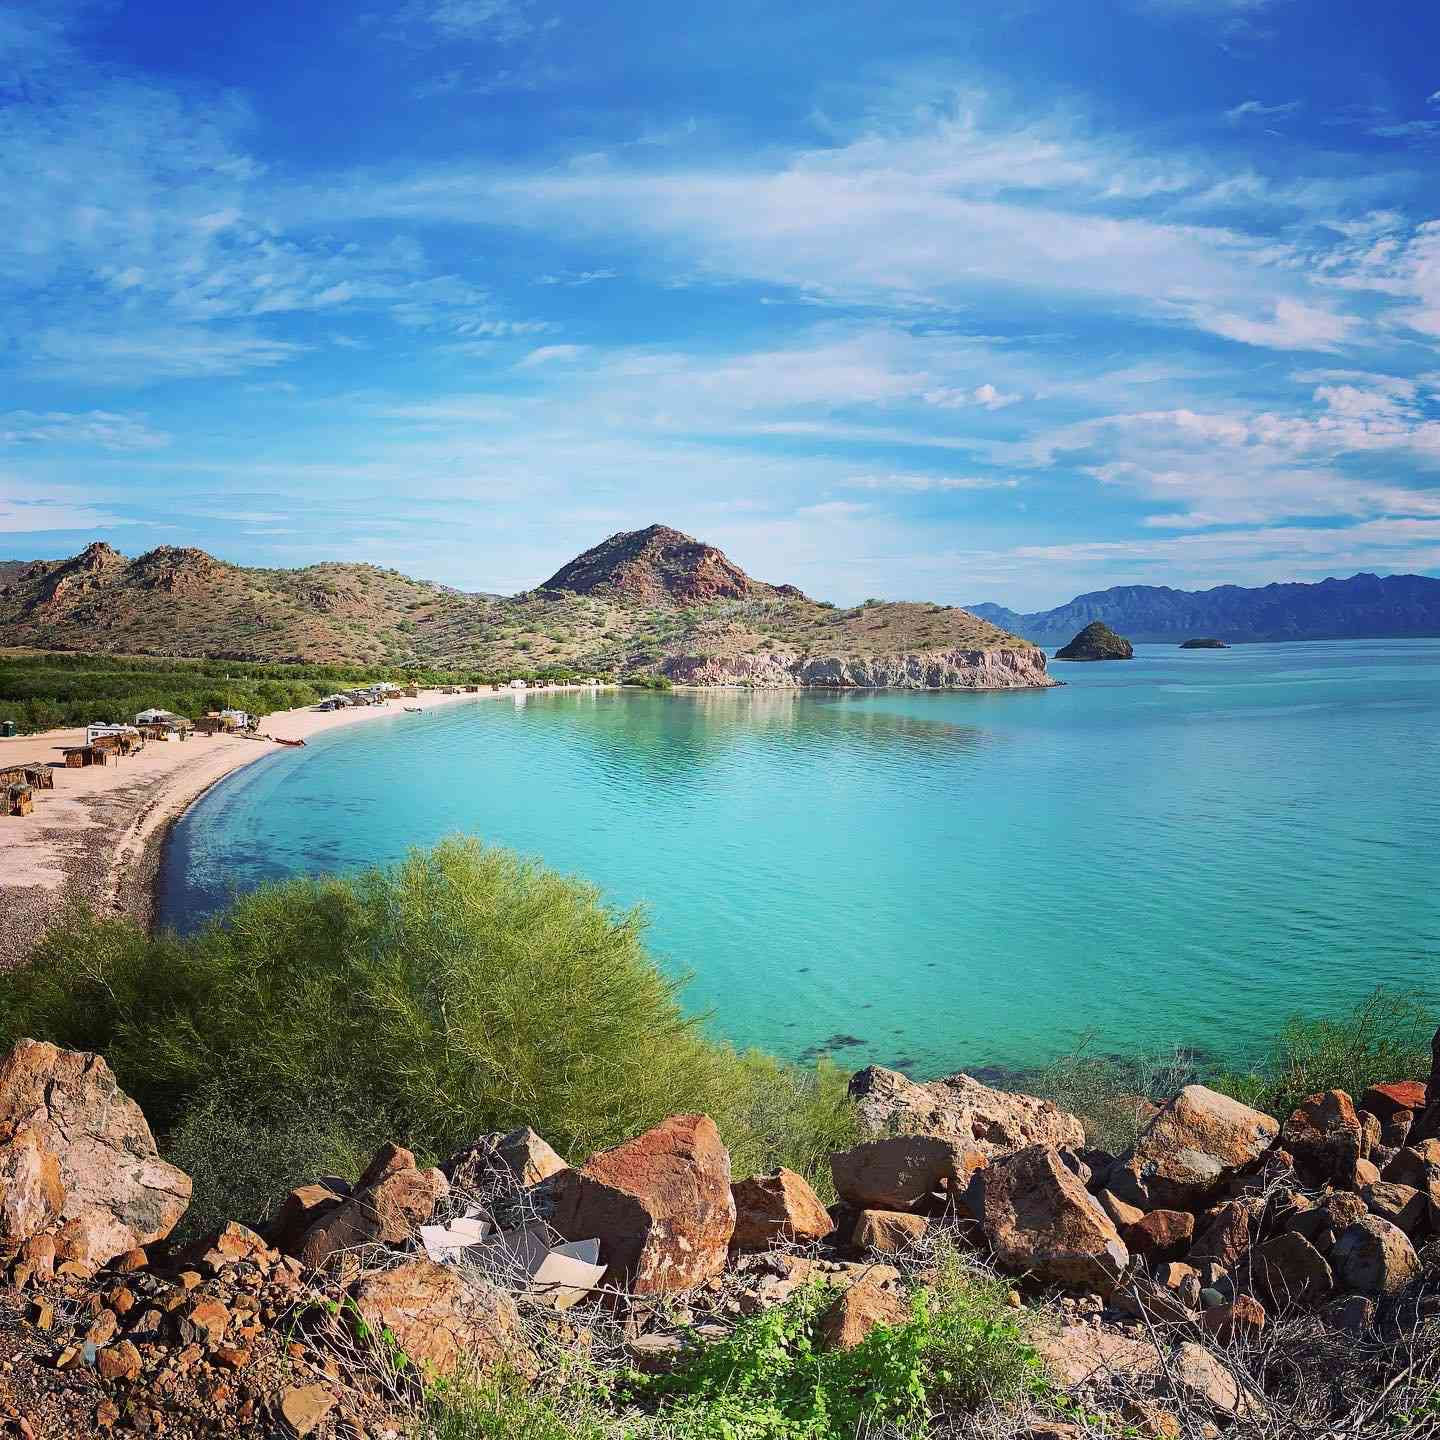 Playa Cocos, one of the many beaches you can camp on for a nominal fee in Baja, Mexico, along the Sea of Cortez.